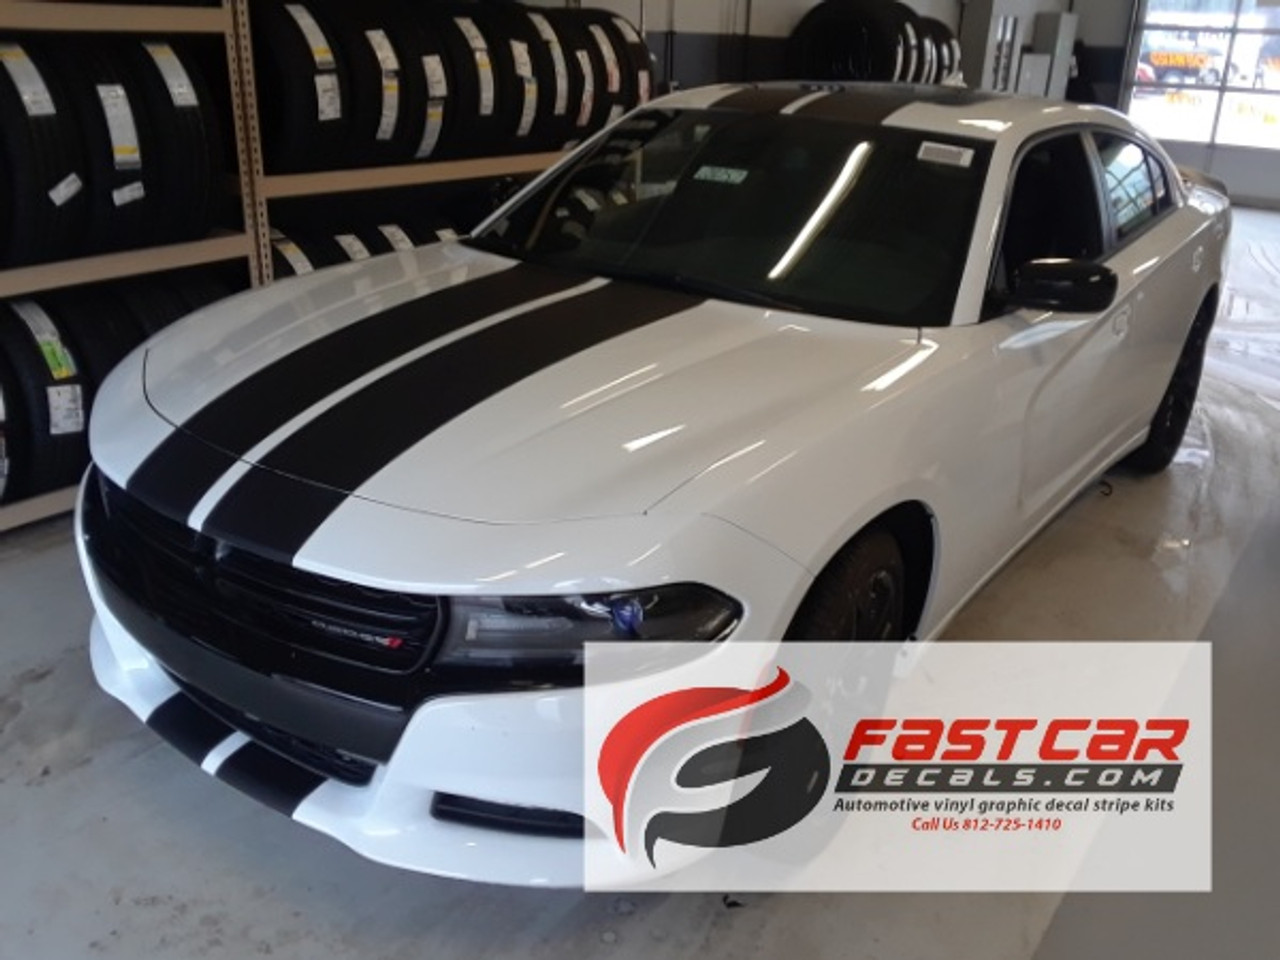 N CHARGE 2015-2018 Dodge Charger Rally Center Hood Racing Stripes 3M Pro Vinyl